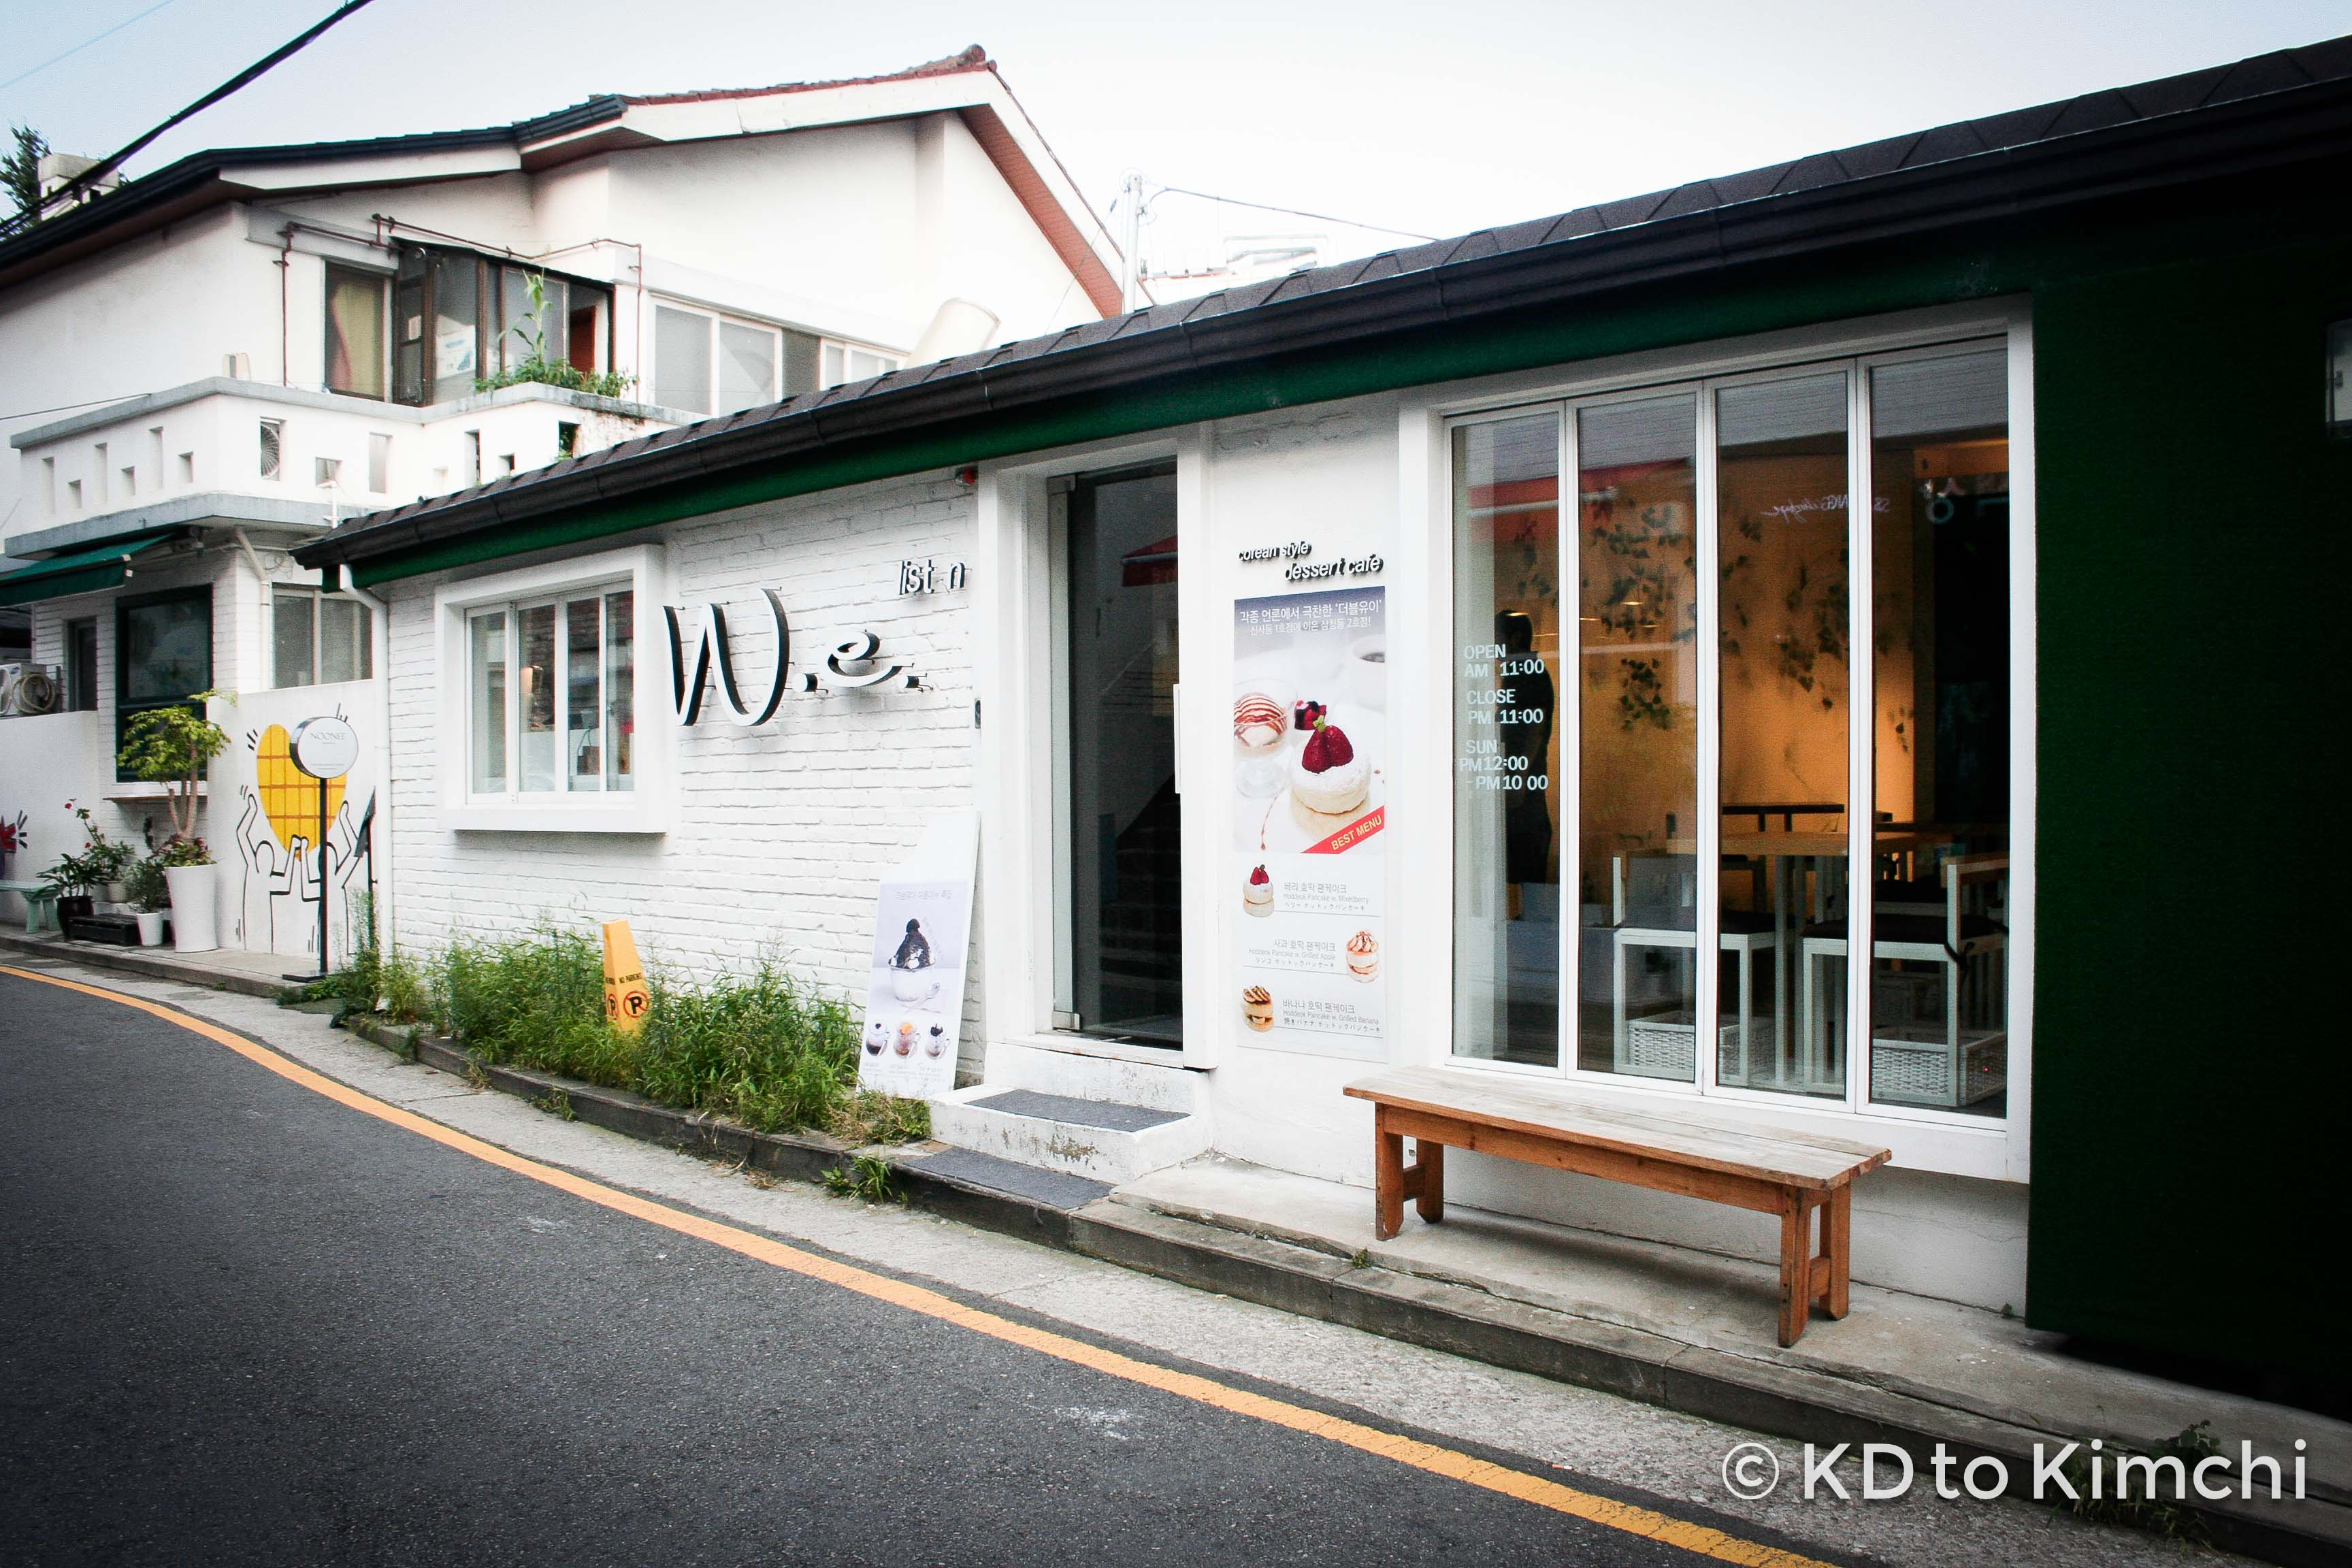 Date Restaurant From Kd To Kimchi